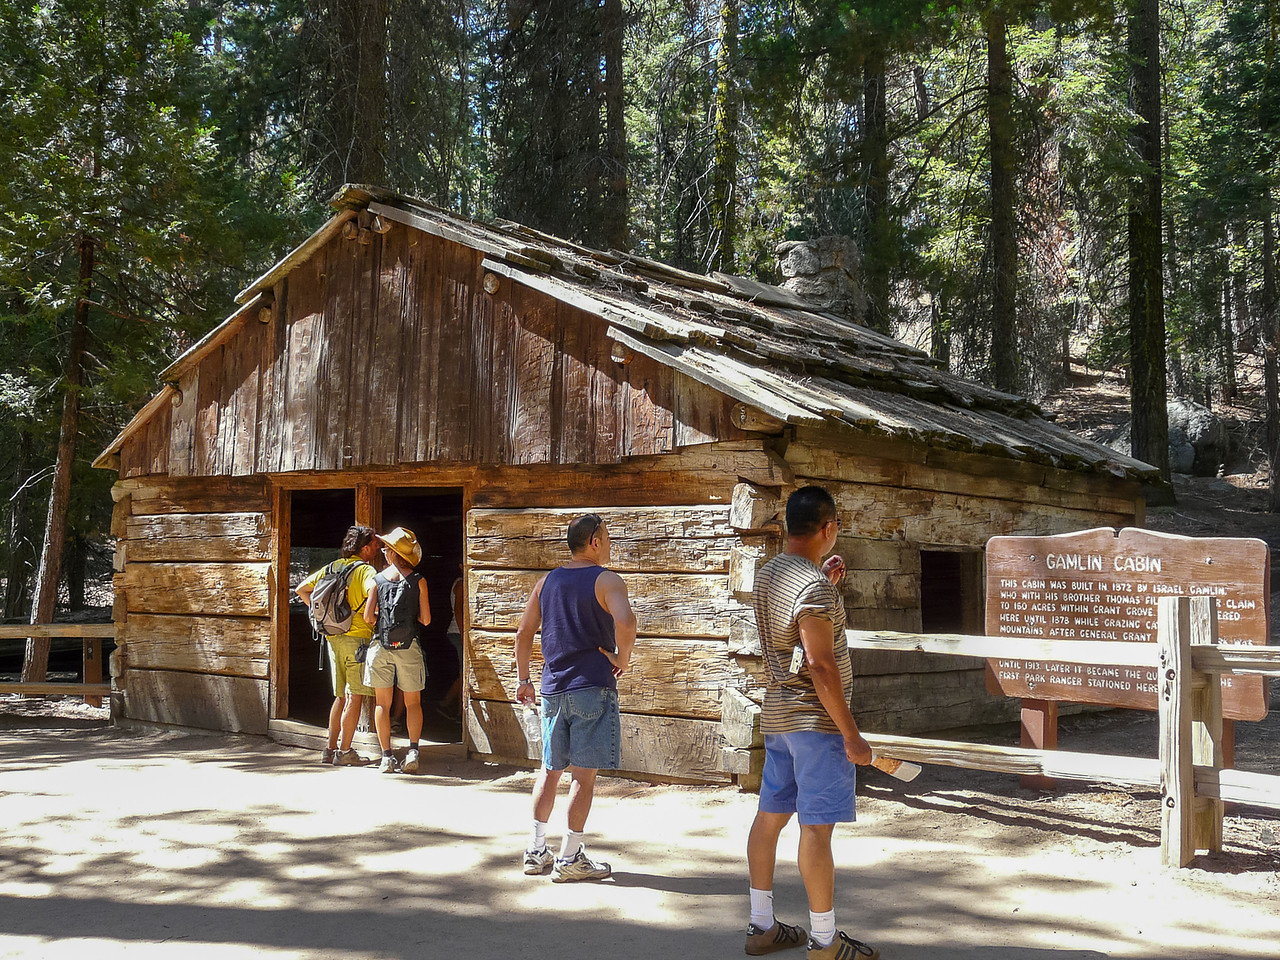 The Gamlin Cabin was pretty high-end as forest cabins go.